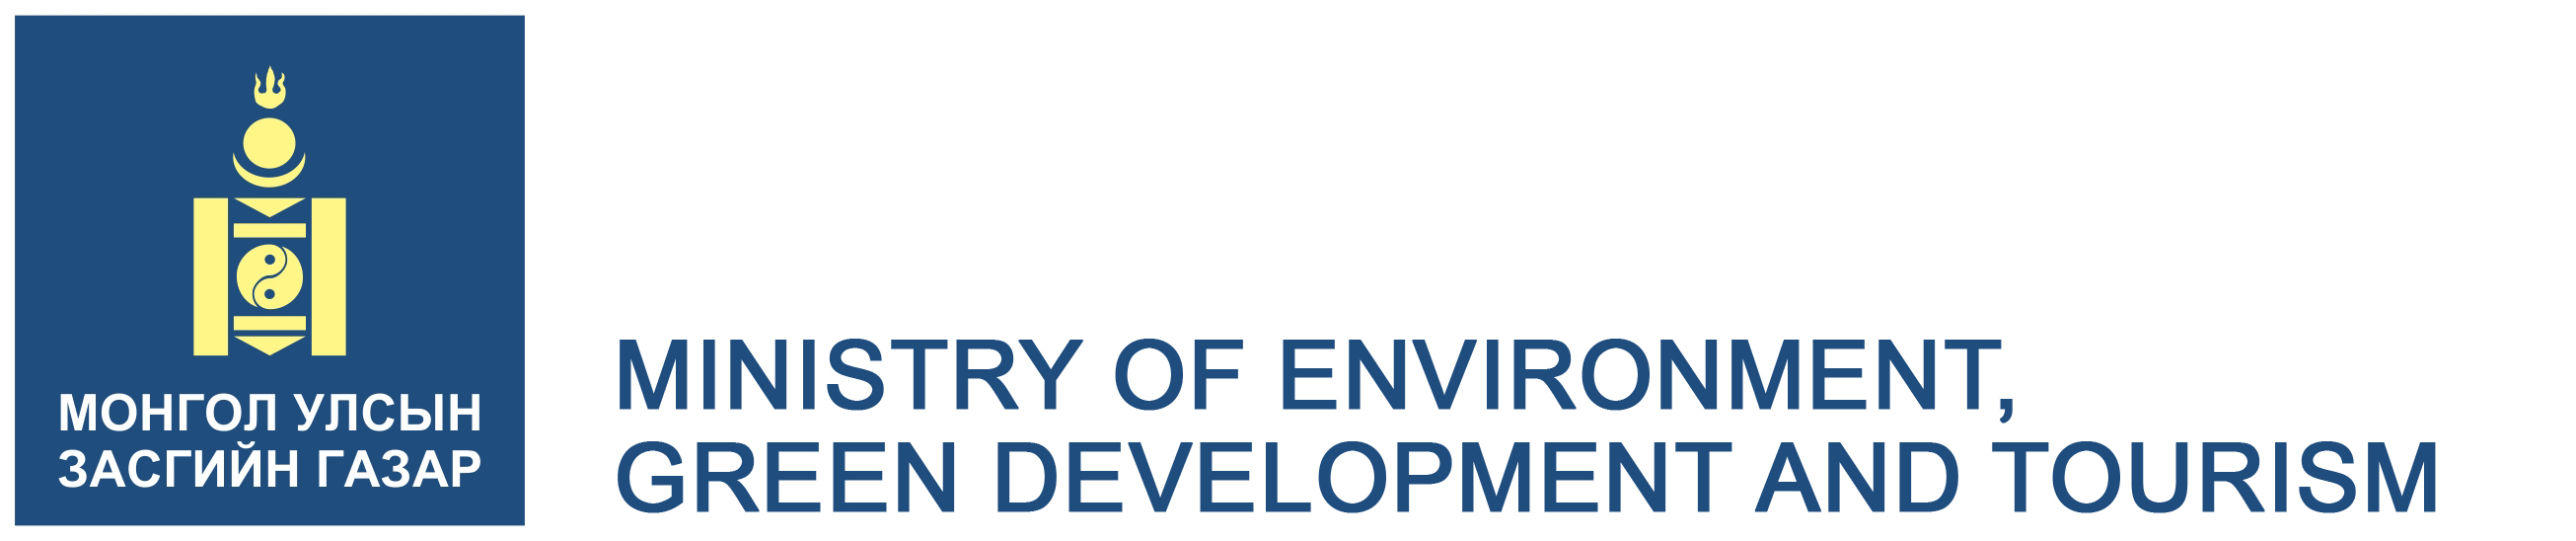 Third Apn Science Policy Dialogue On Global Environmental